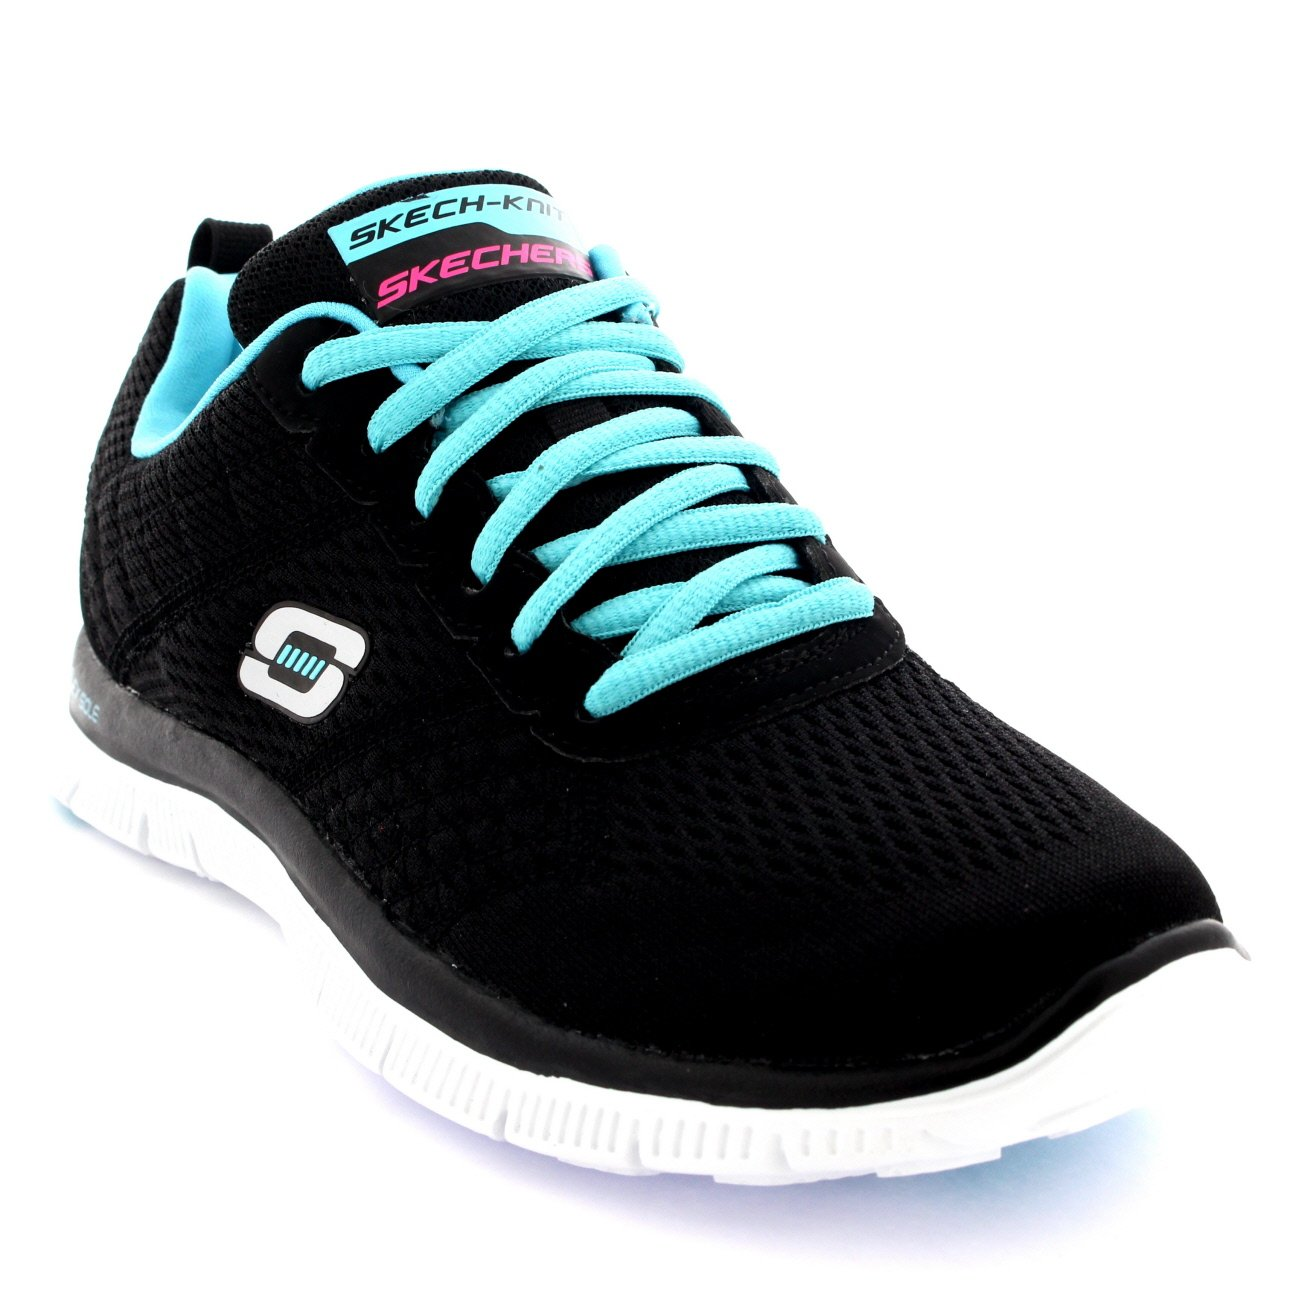 10e2fbaf9c6b Skechers Womens Flex Appeal Obvious Choice Casual Memory Foam Trainers -  Pink Yellow - 5  Amazon.co.uk  Shoes   Bags